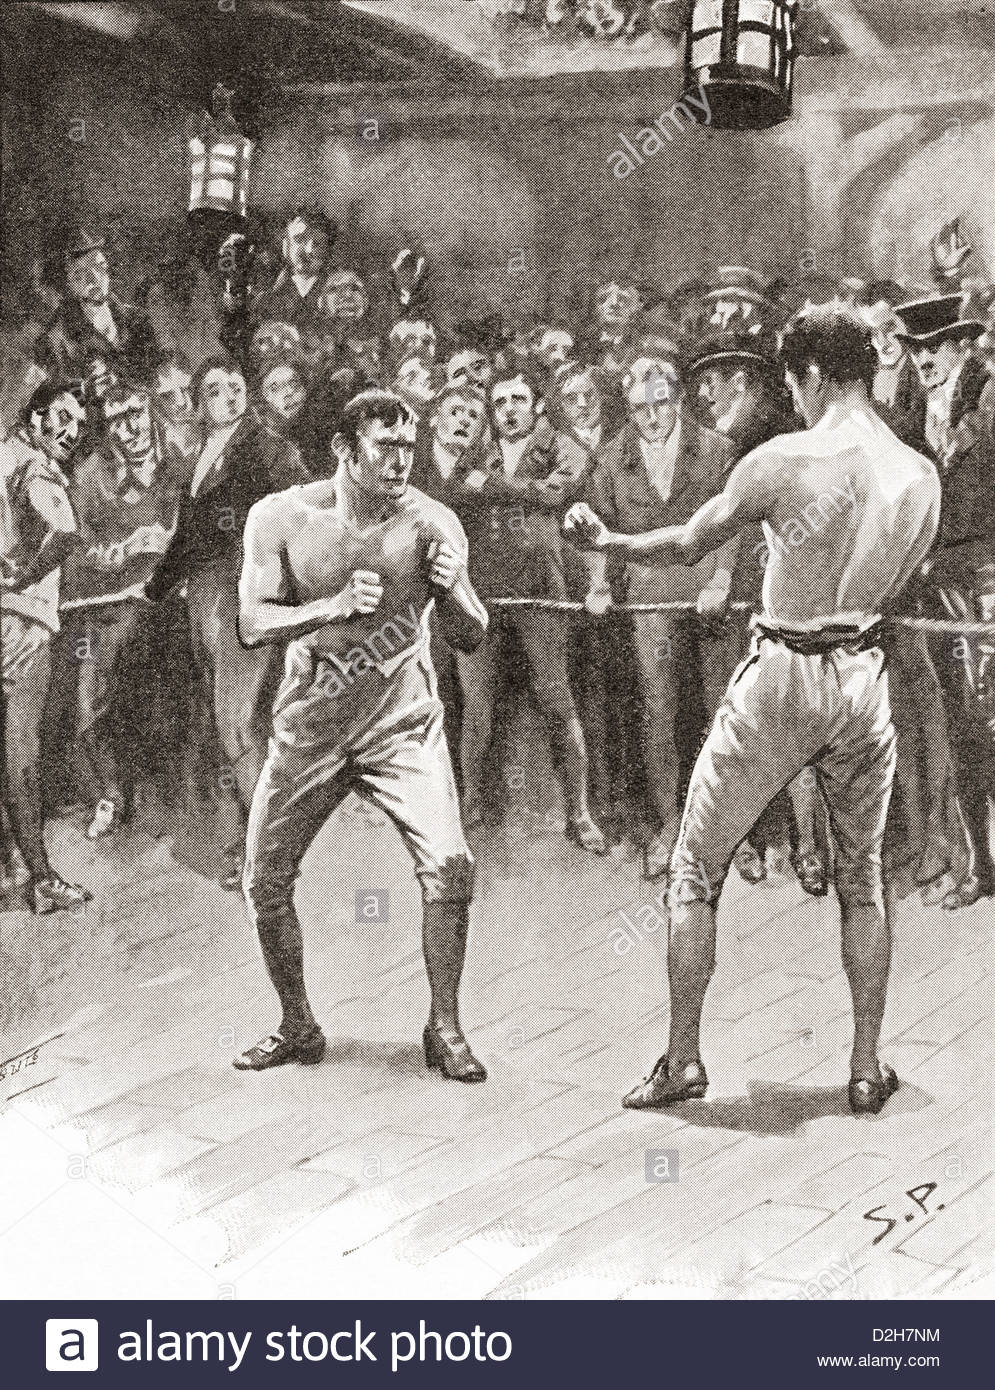 bare-knuckle-boxeo-en-el-siglo-xix-aka-bare-knuckle-prizefighting-o-fisticuffs-era-la-forma-original-de-boxeo-d2h7nm.jpg